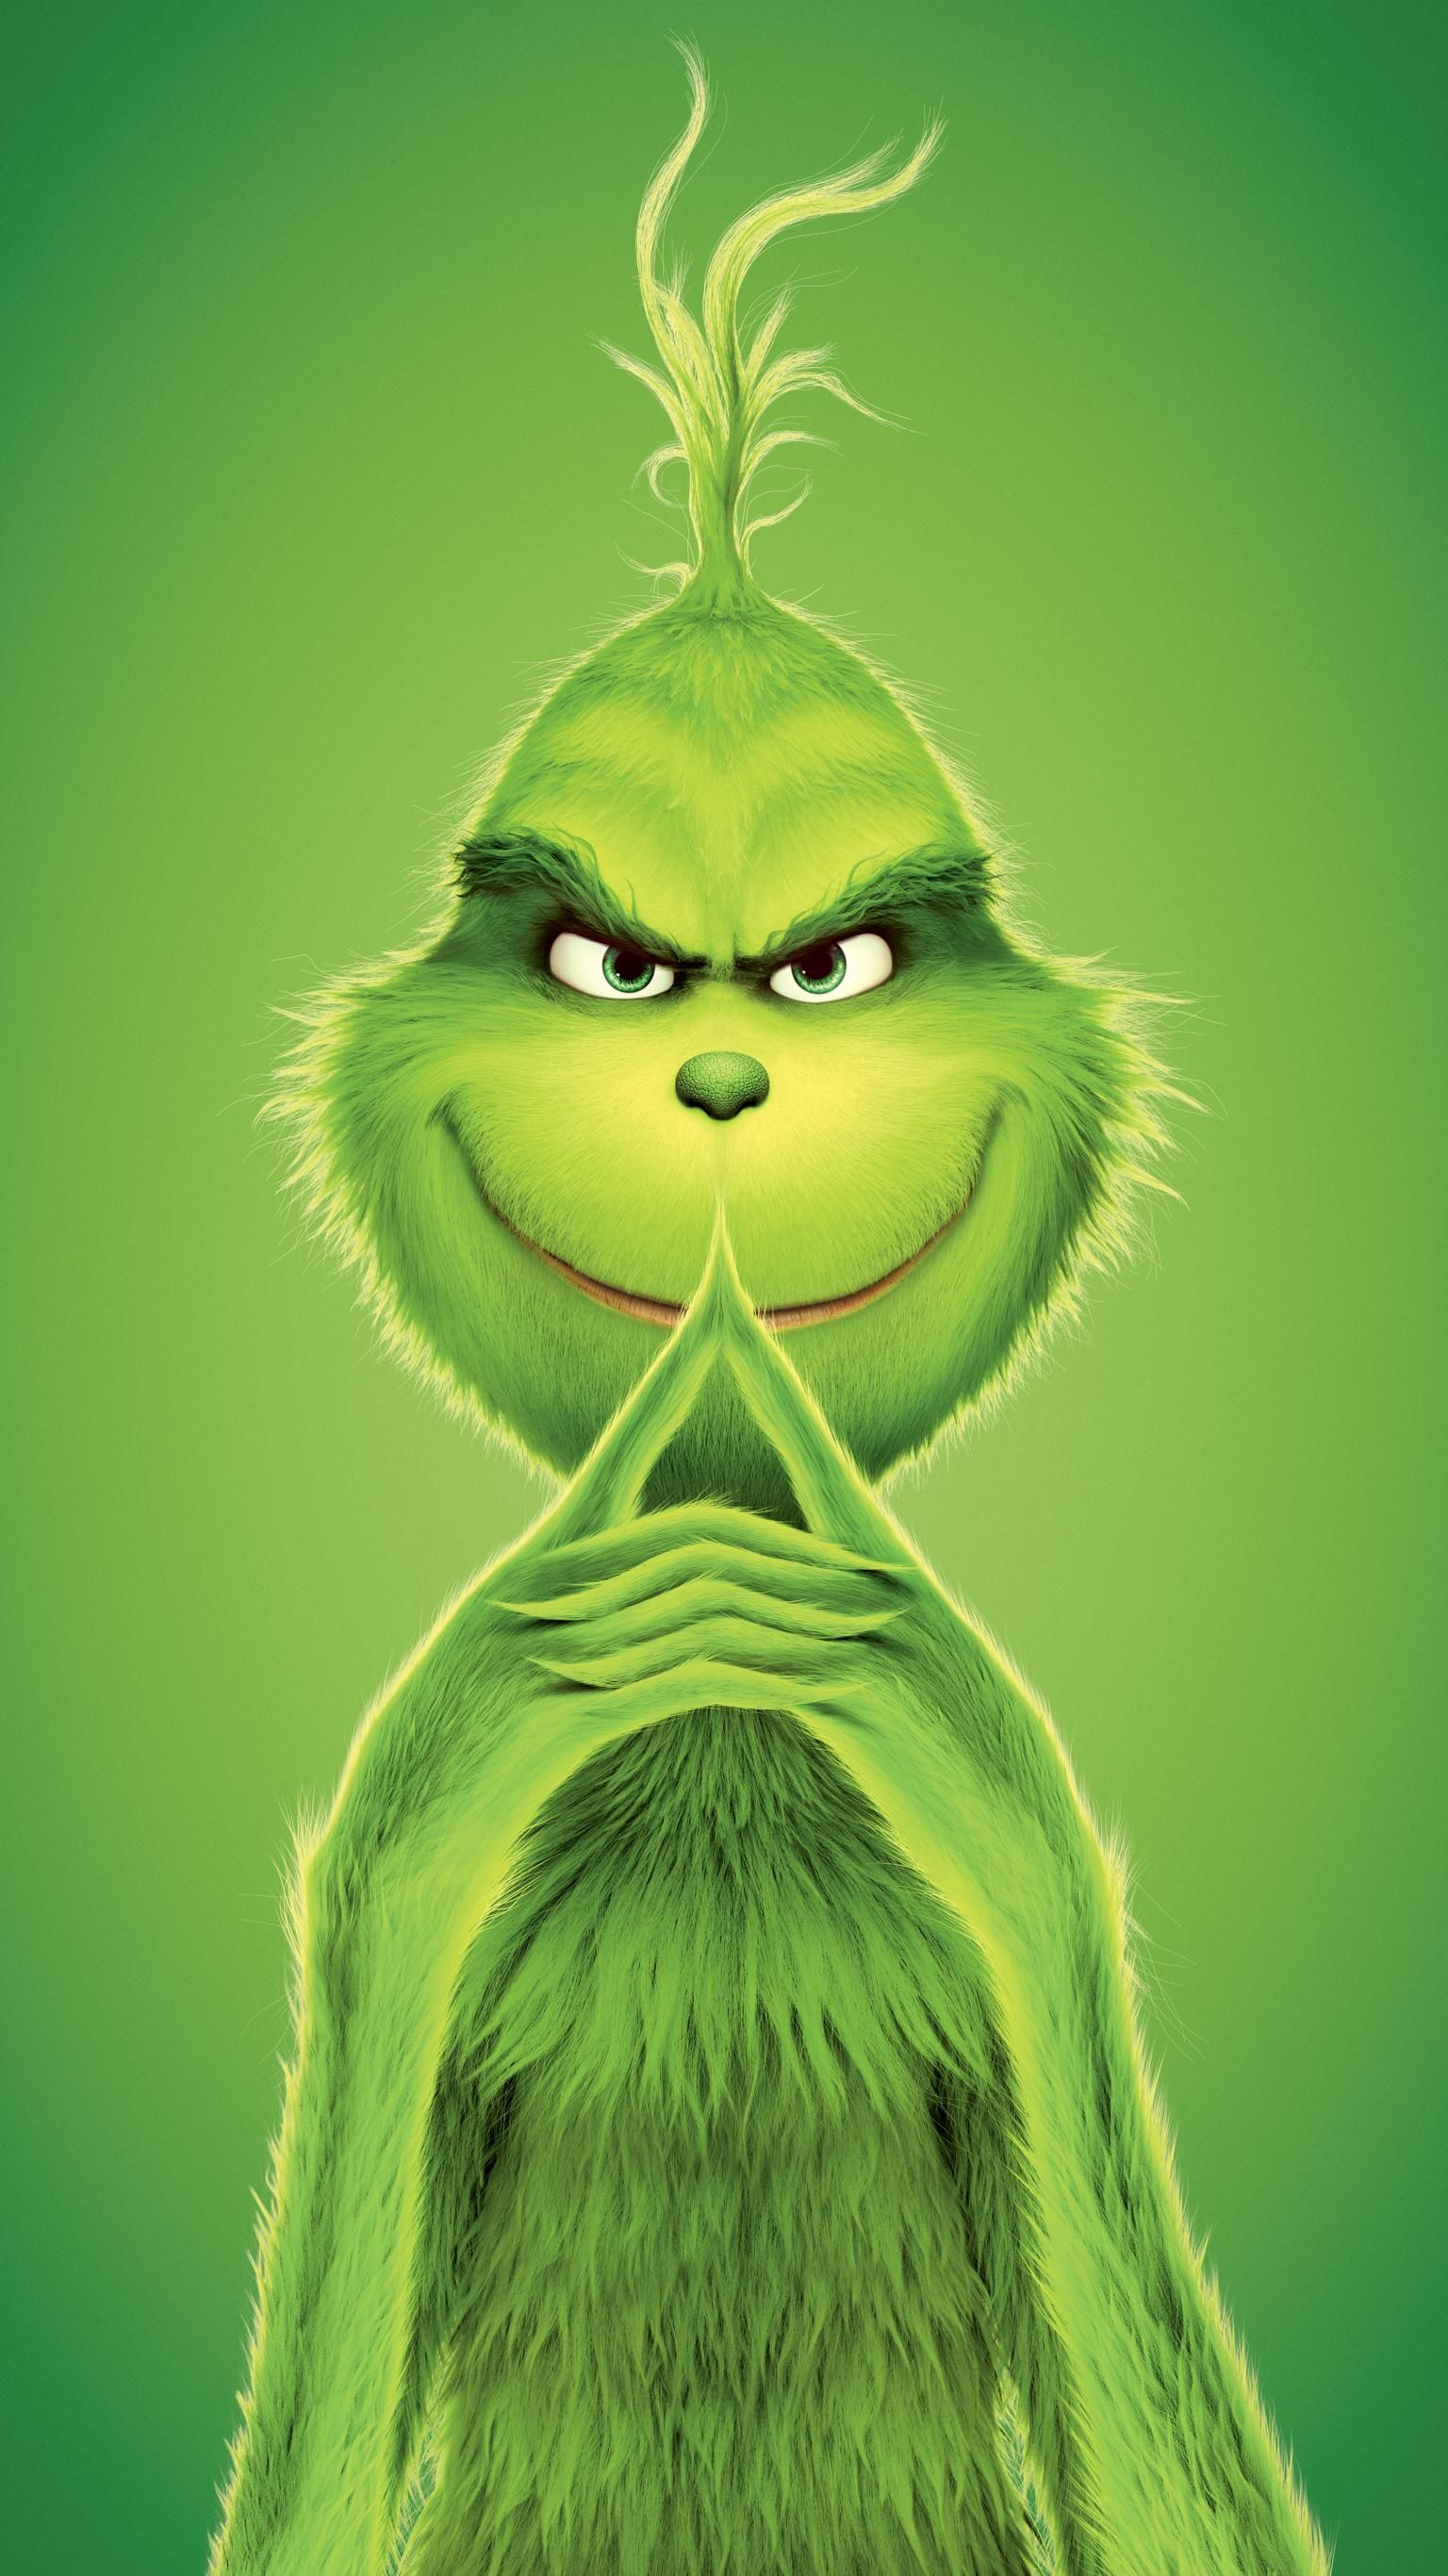 The Grinch (2018) Phone Wallpaper Disney phone wallpaper